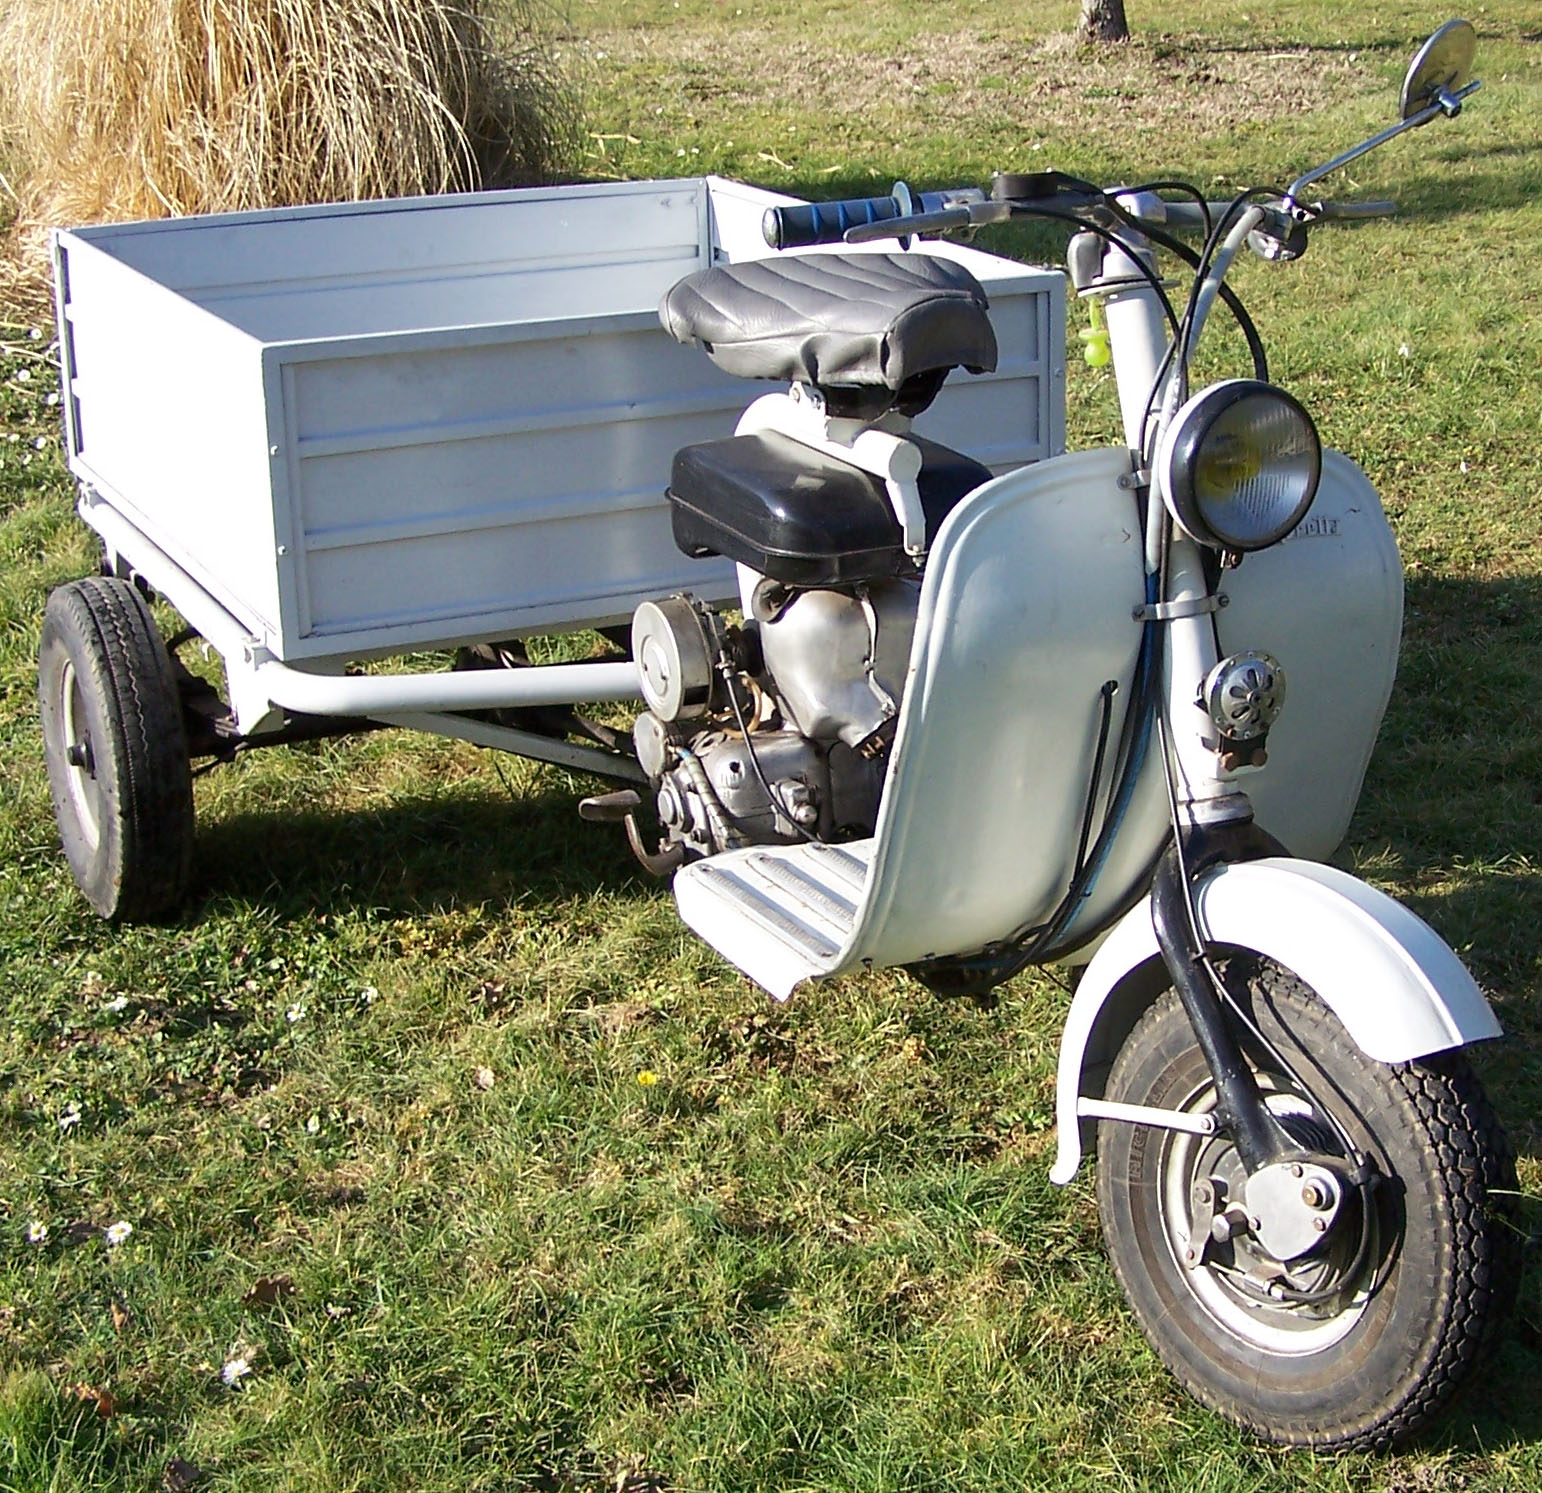 page 655 1958 lambretta fd triporteur sold 2nd buyvintage online auction 2015 onwards. Black Bedroom Furniture Sets. Home Design Ideas